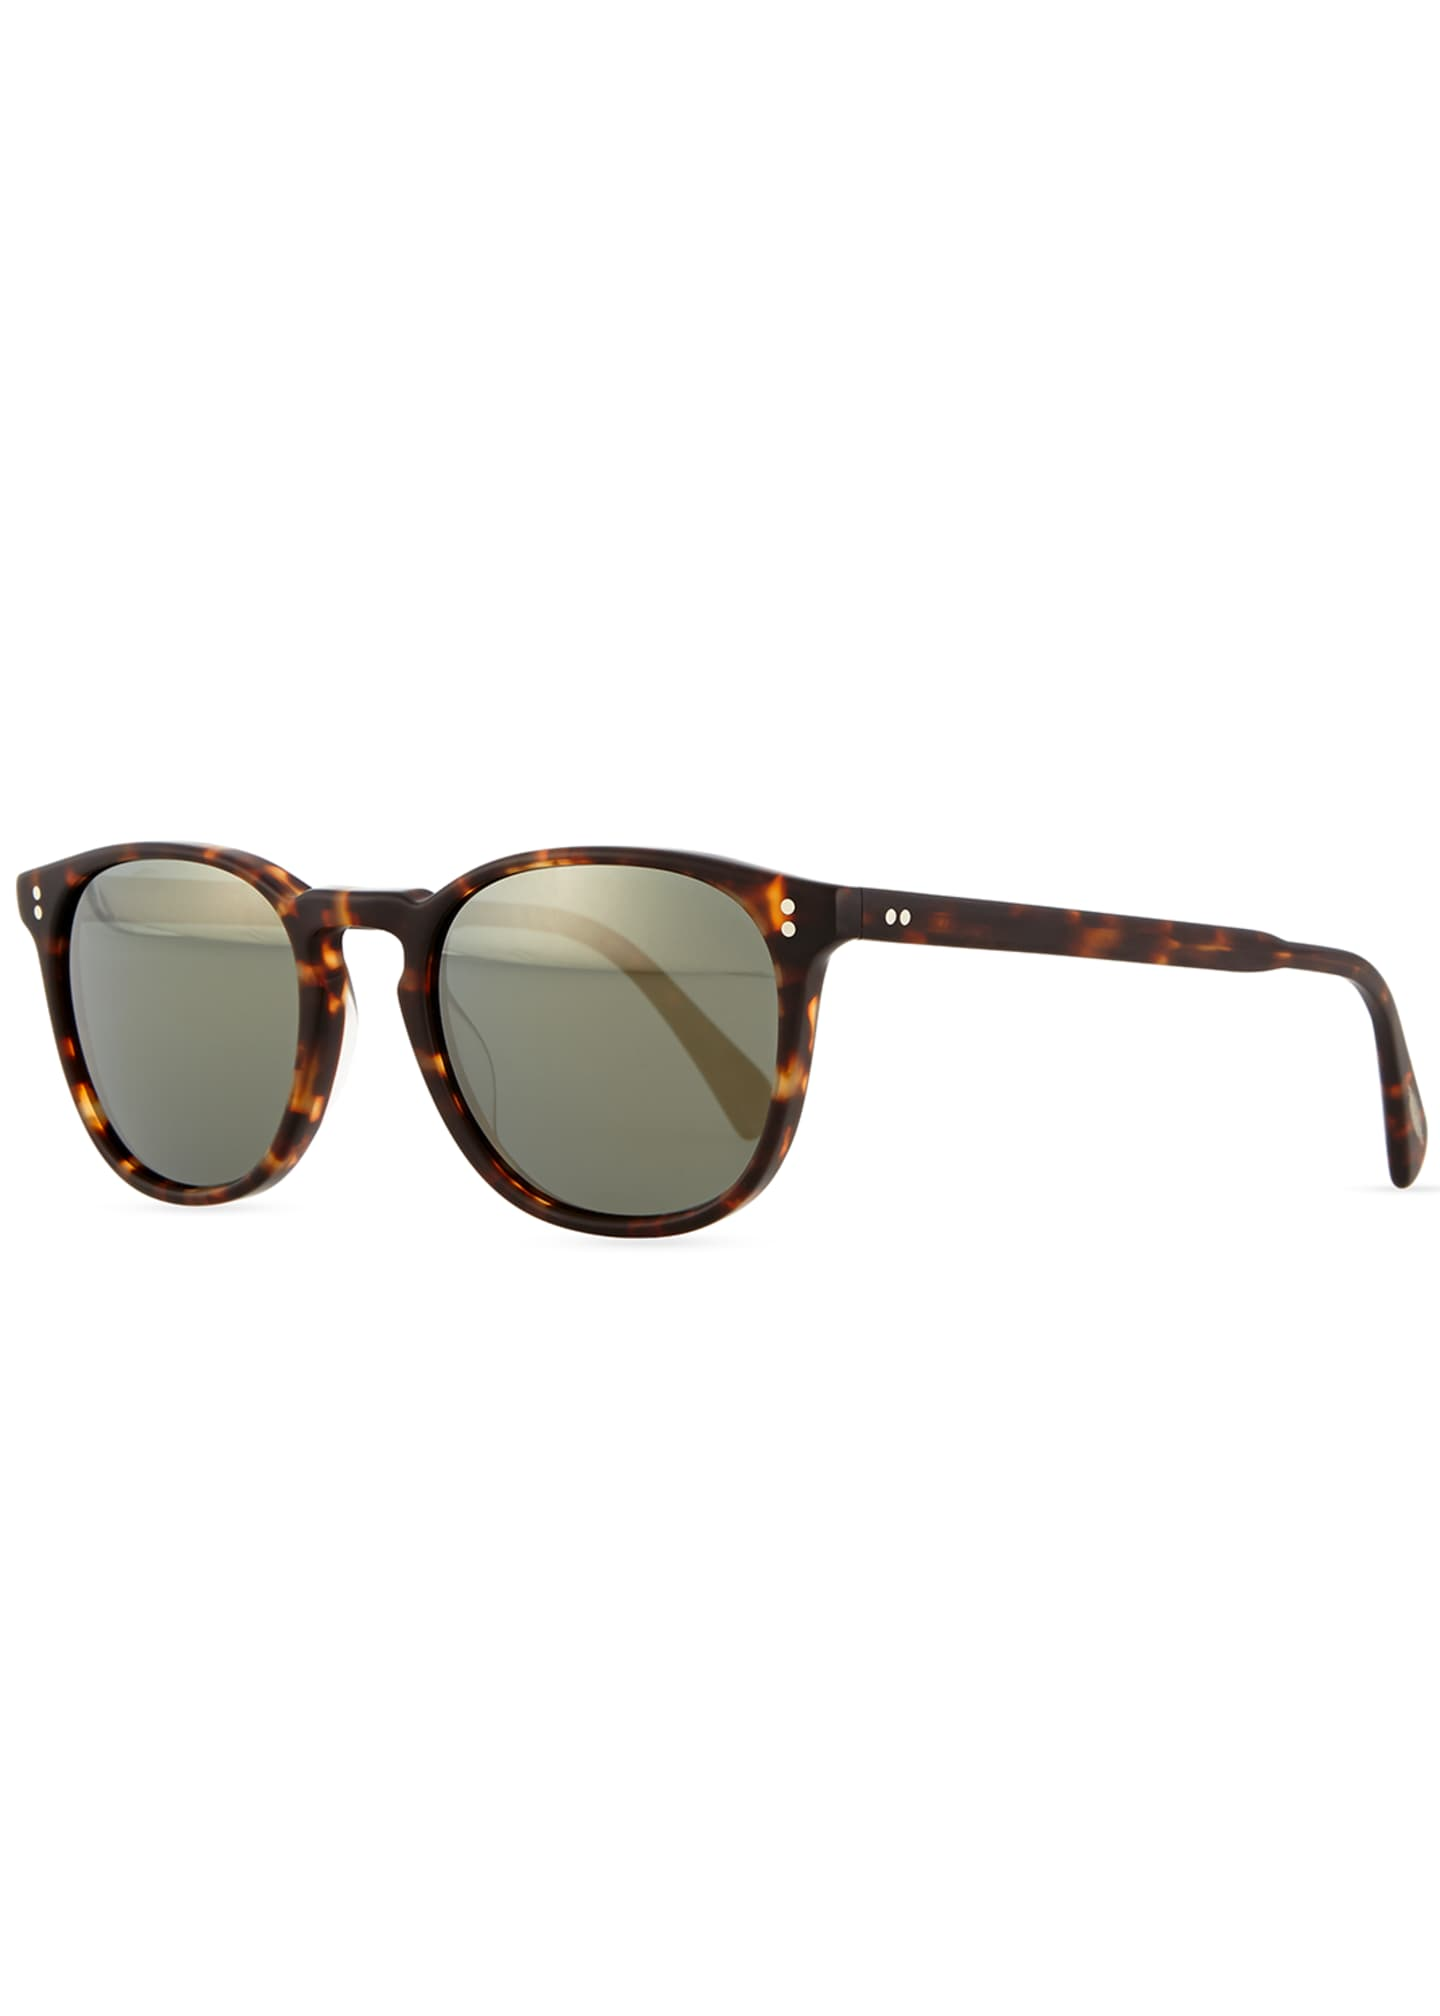 Oliver Peoples Finley Universal-Fit Photochromic Sunglasses